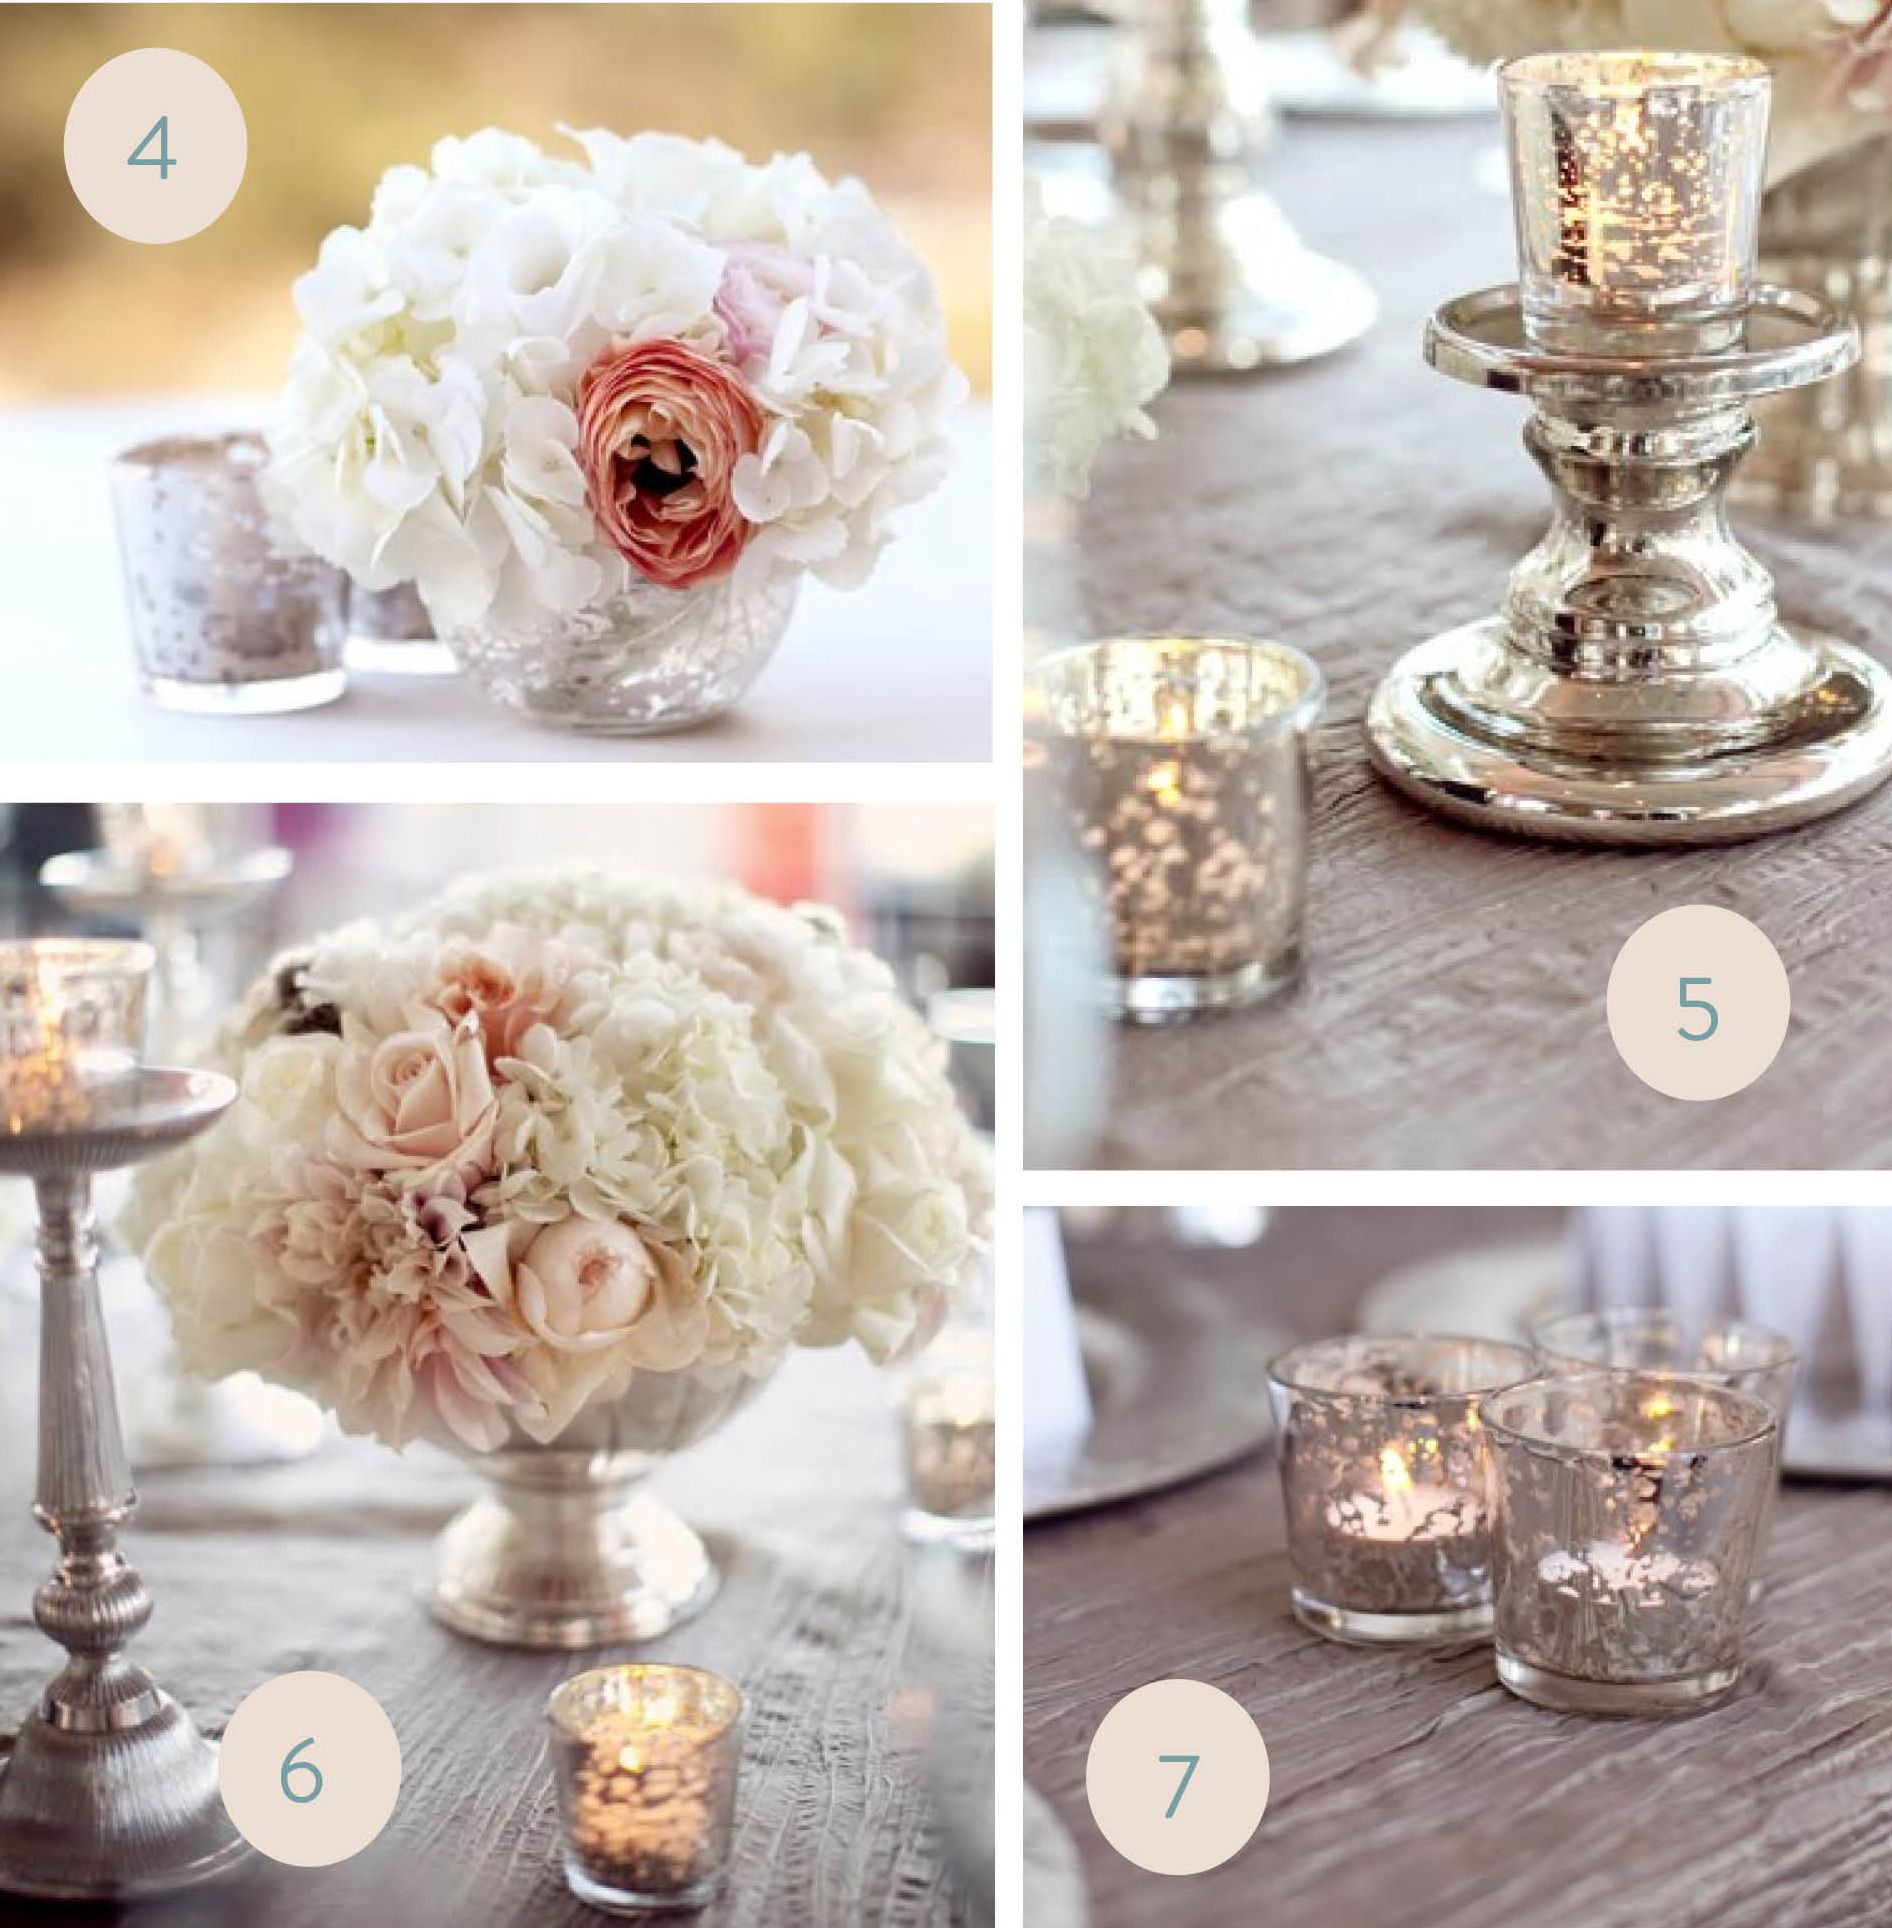 mercury glass - vases, candles | The Wedding Shoebox | Pinterest ...